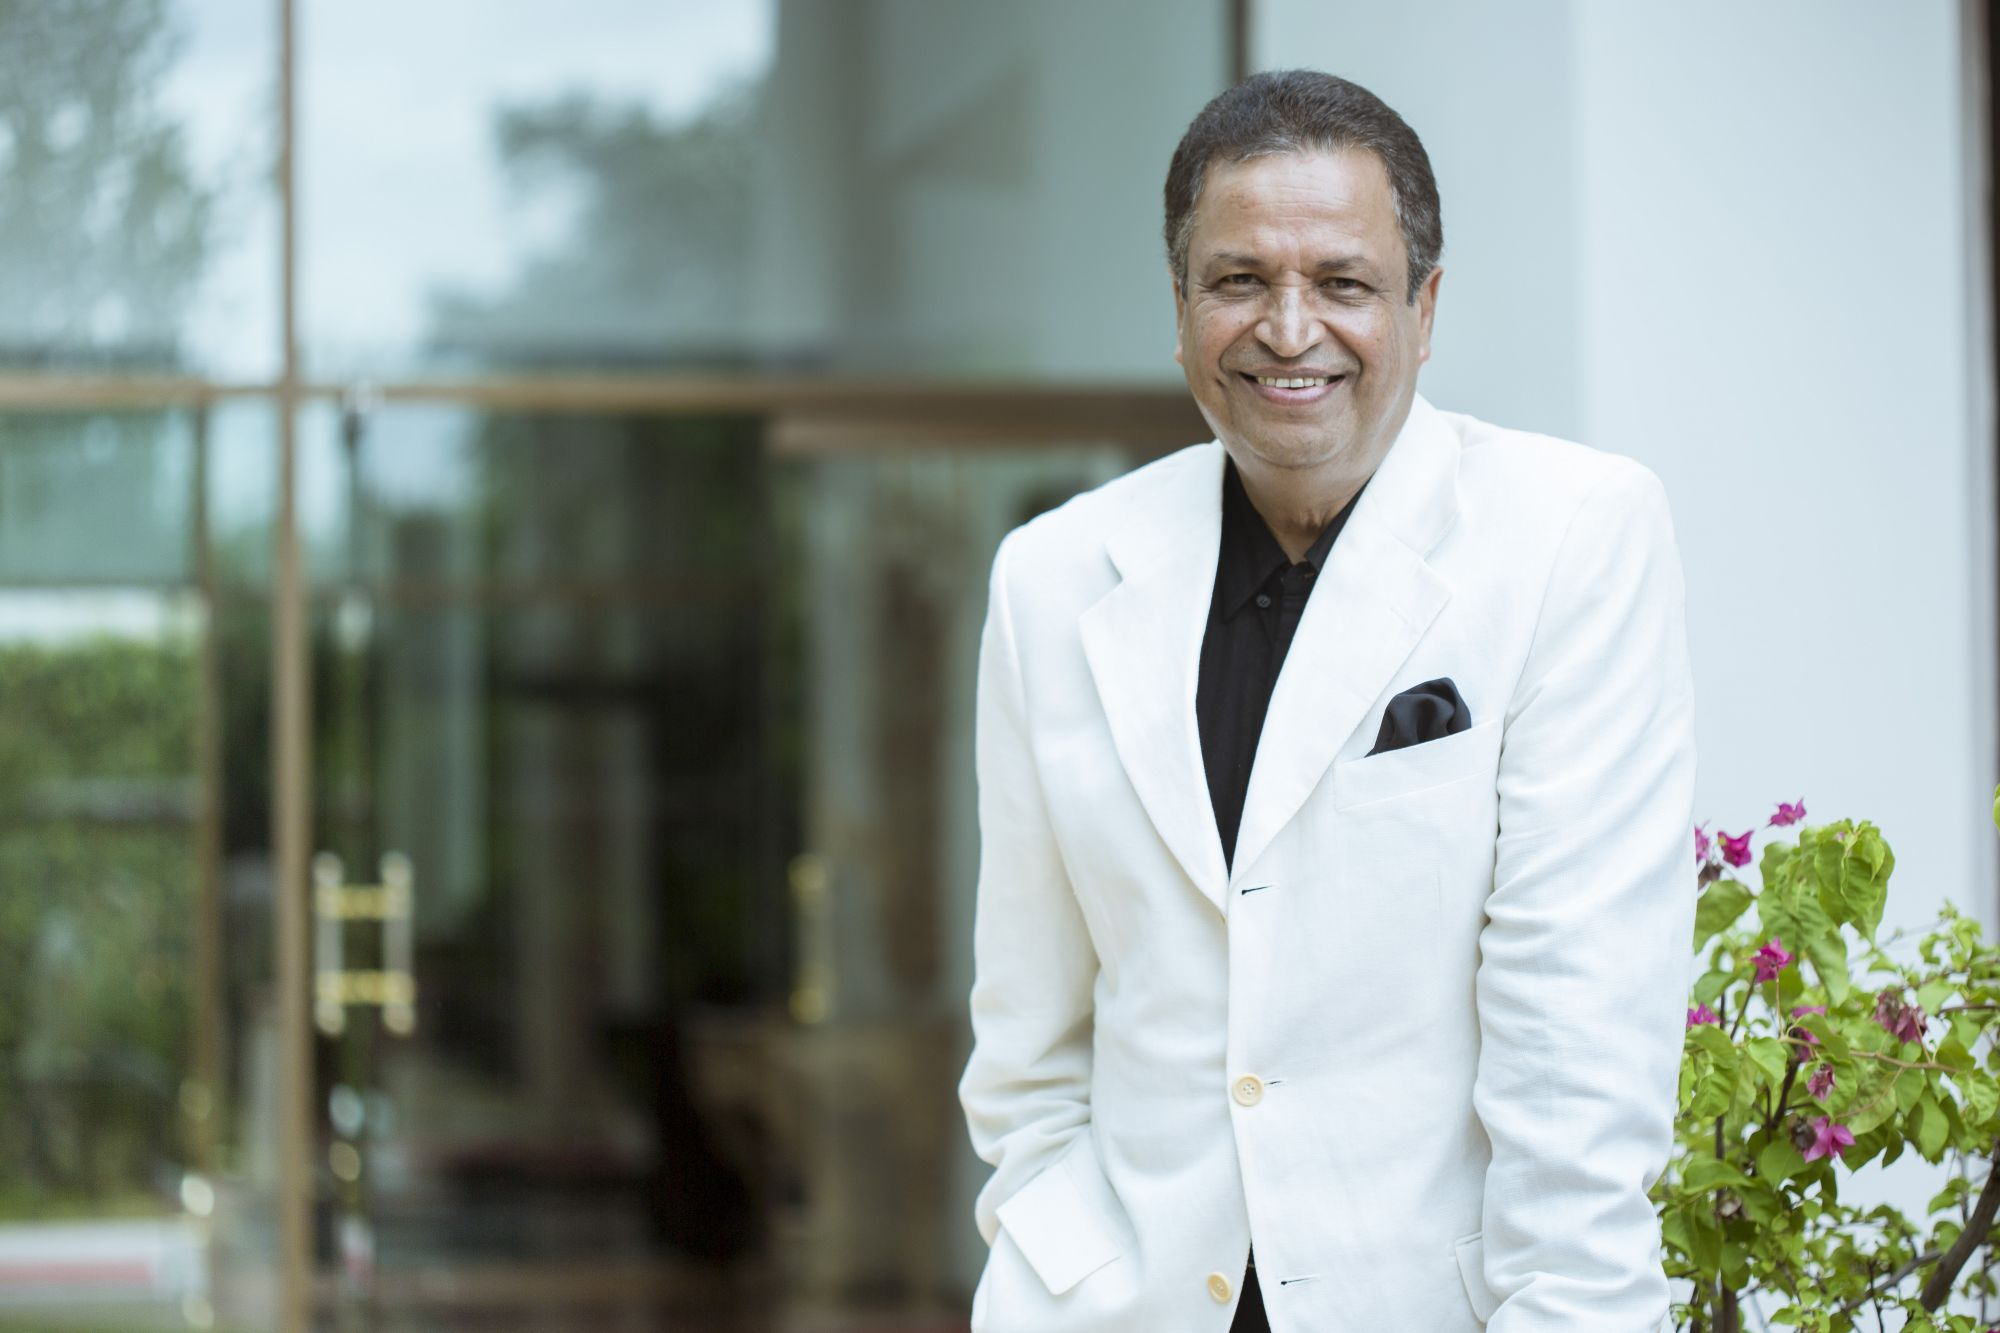 Nepal Billionaire Binod Chaudhary Opens His First Luxury Hotel In Dubai